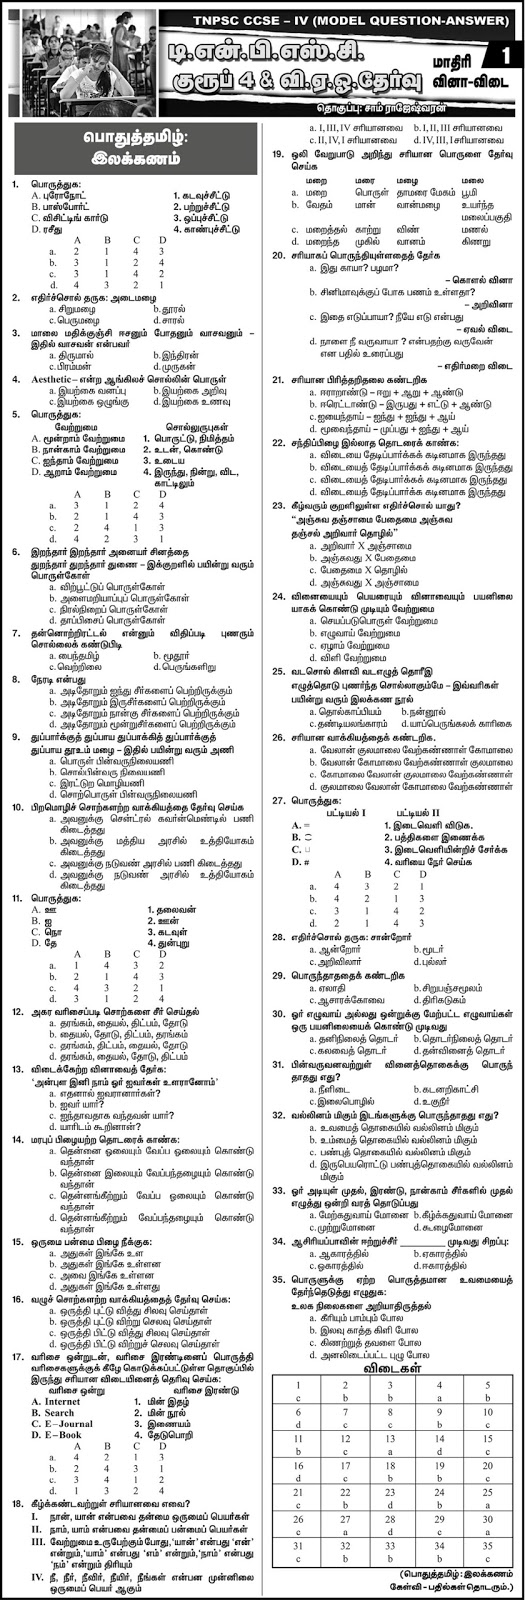 TNPSC General Tamil Model Papers 2017 - Download as PDF